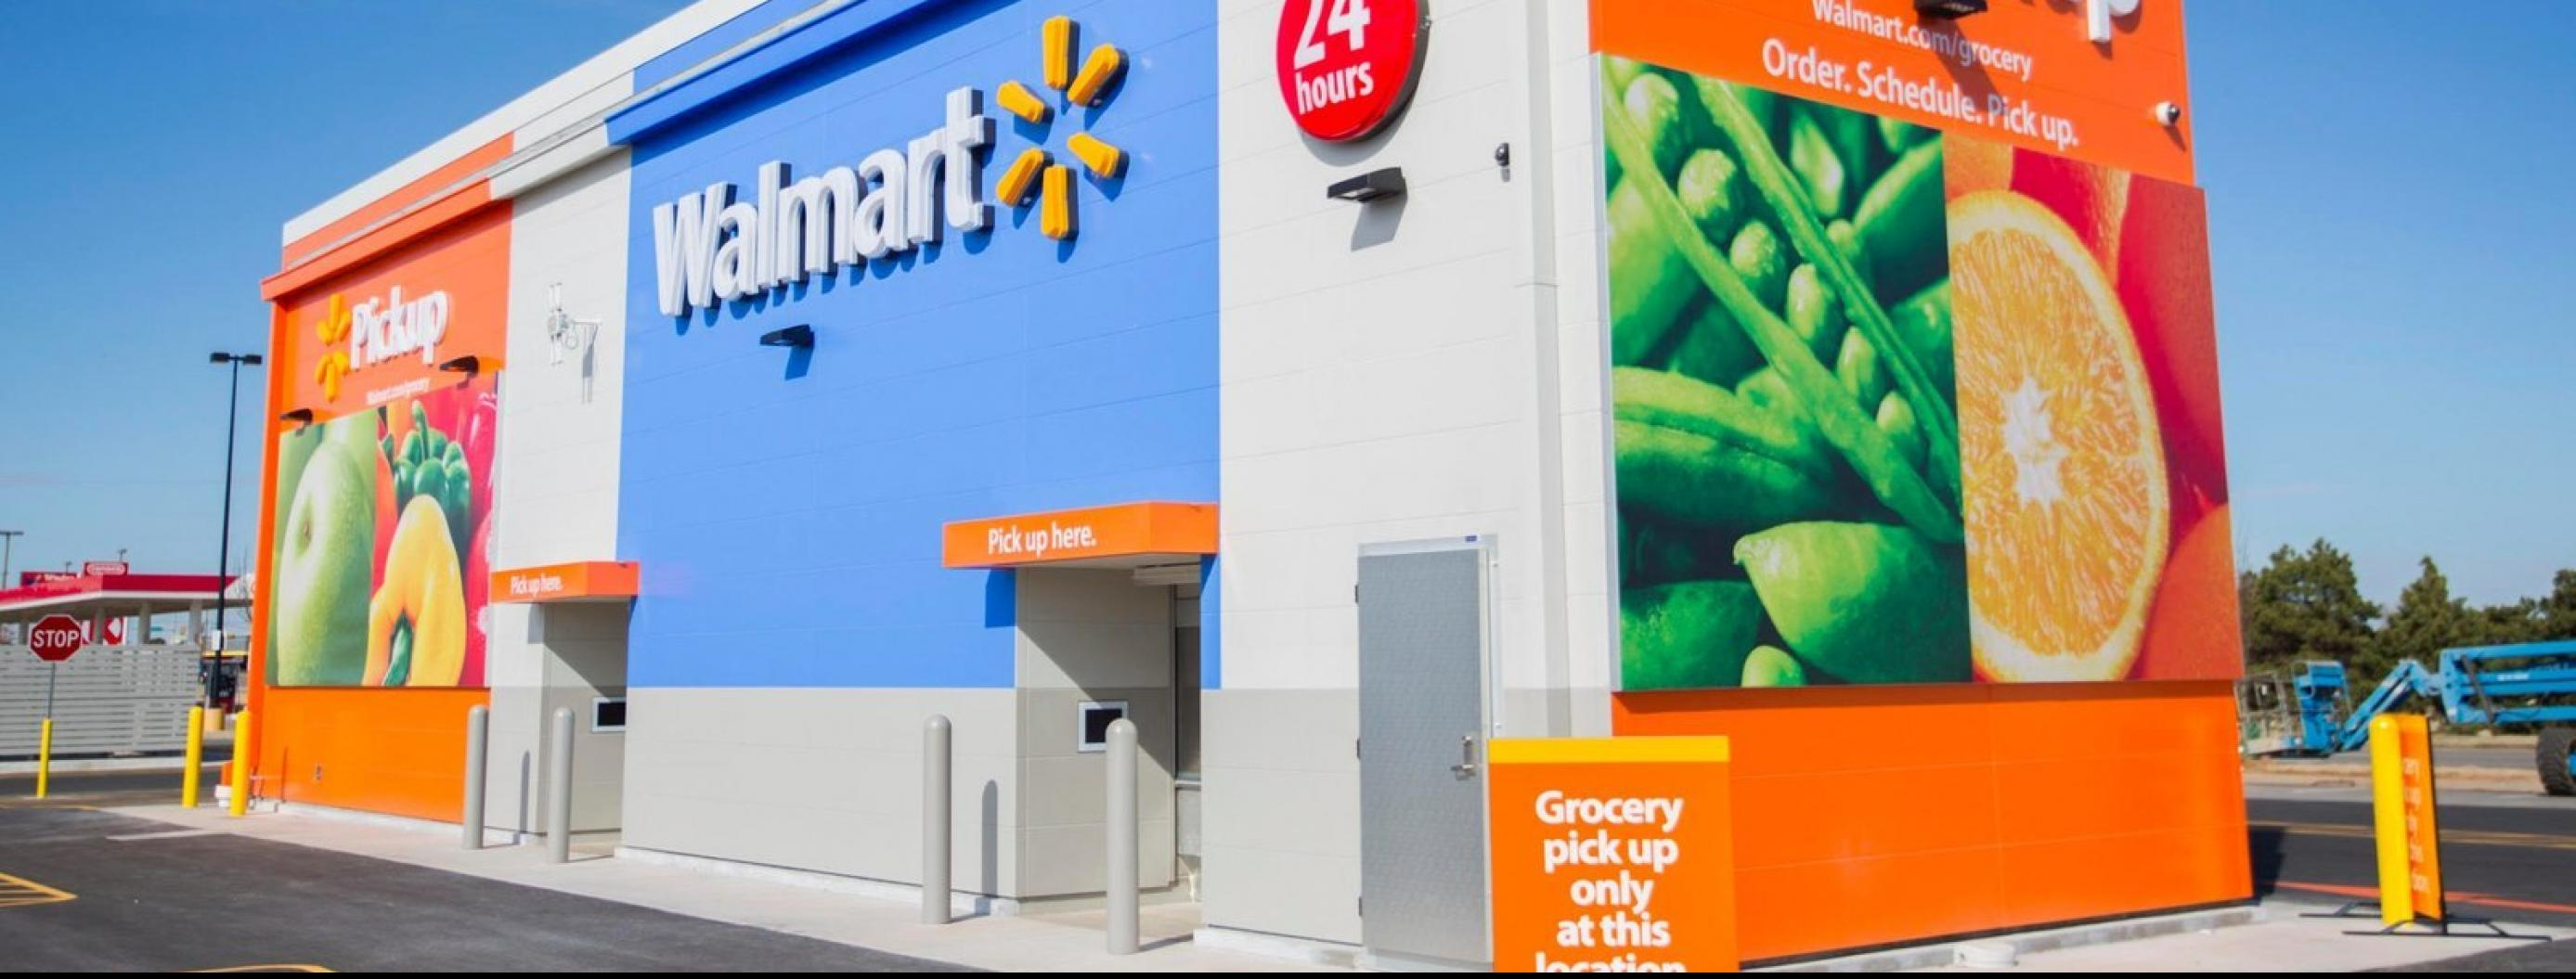 Would You Use this Giant Grocery Vending Machine from Walmart?